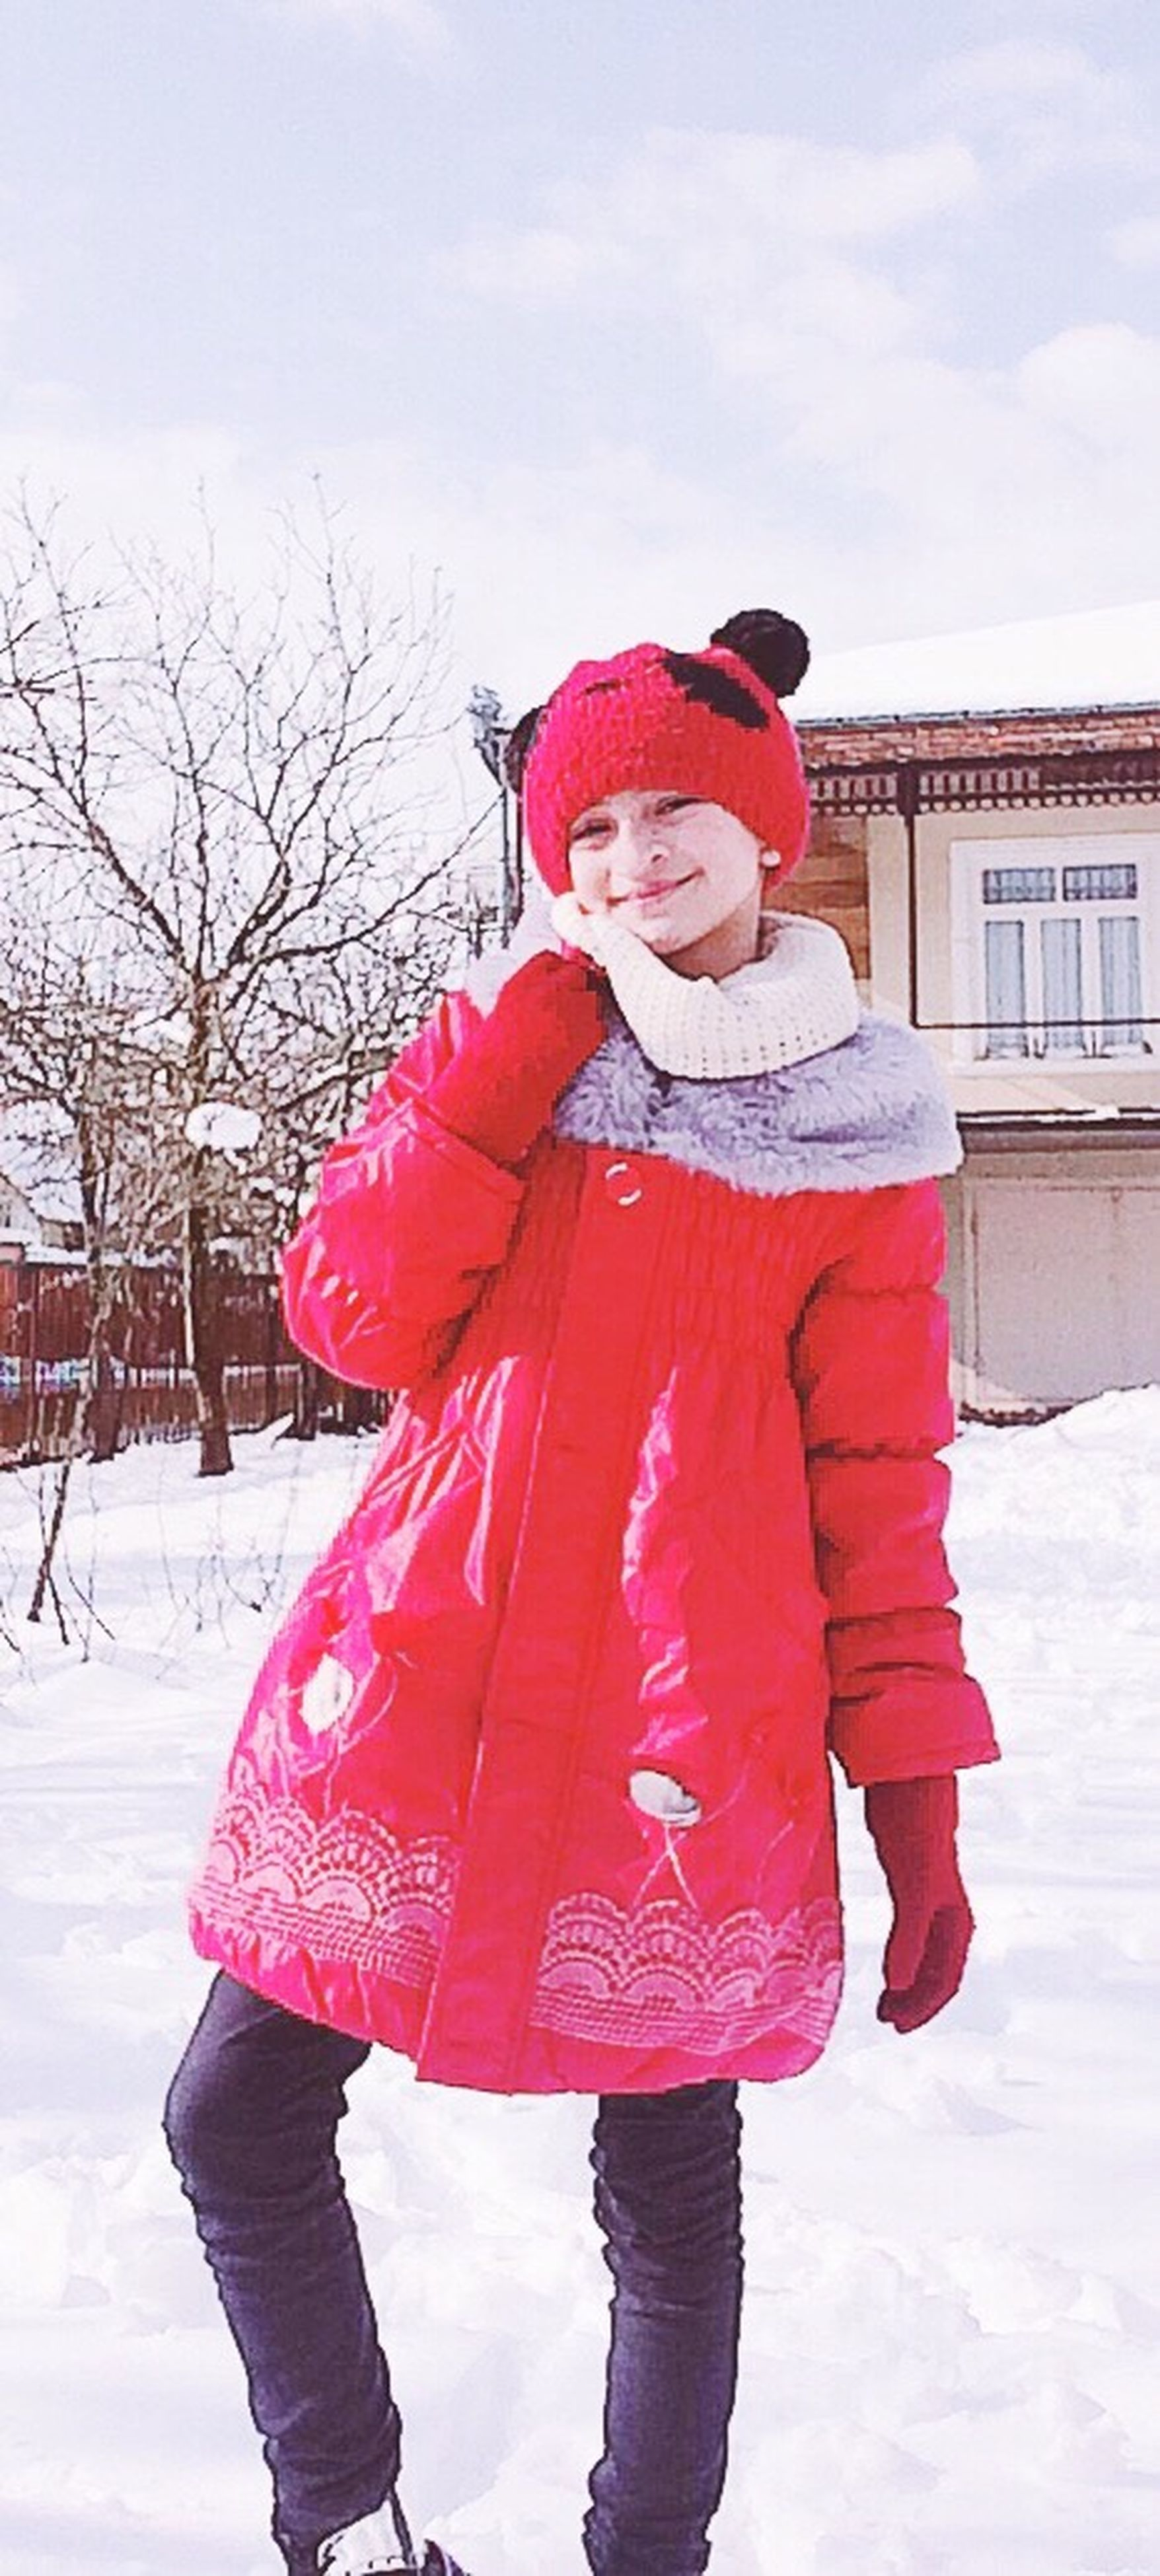 winter, cold temperature, snow, warm clothing, three quarter length, child, frozen, people, childhood, scarf, front view, outdoors, knit hat, standing, holiday - event, smiling, leisure activity, day, one person, cheerful, ice, nature, snowing, adult, sky